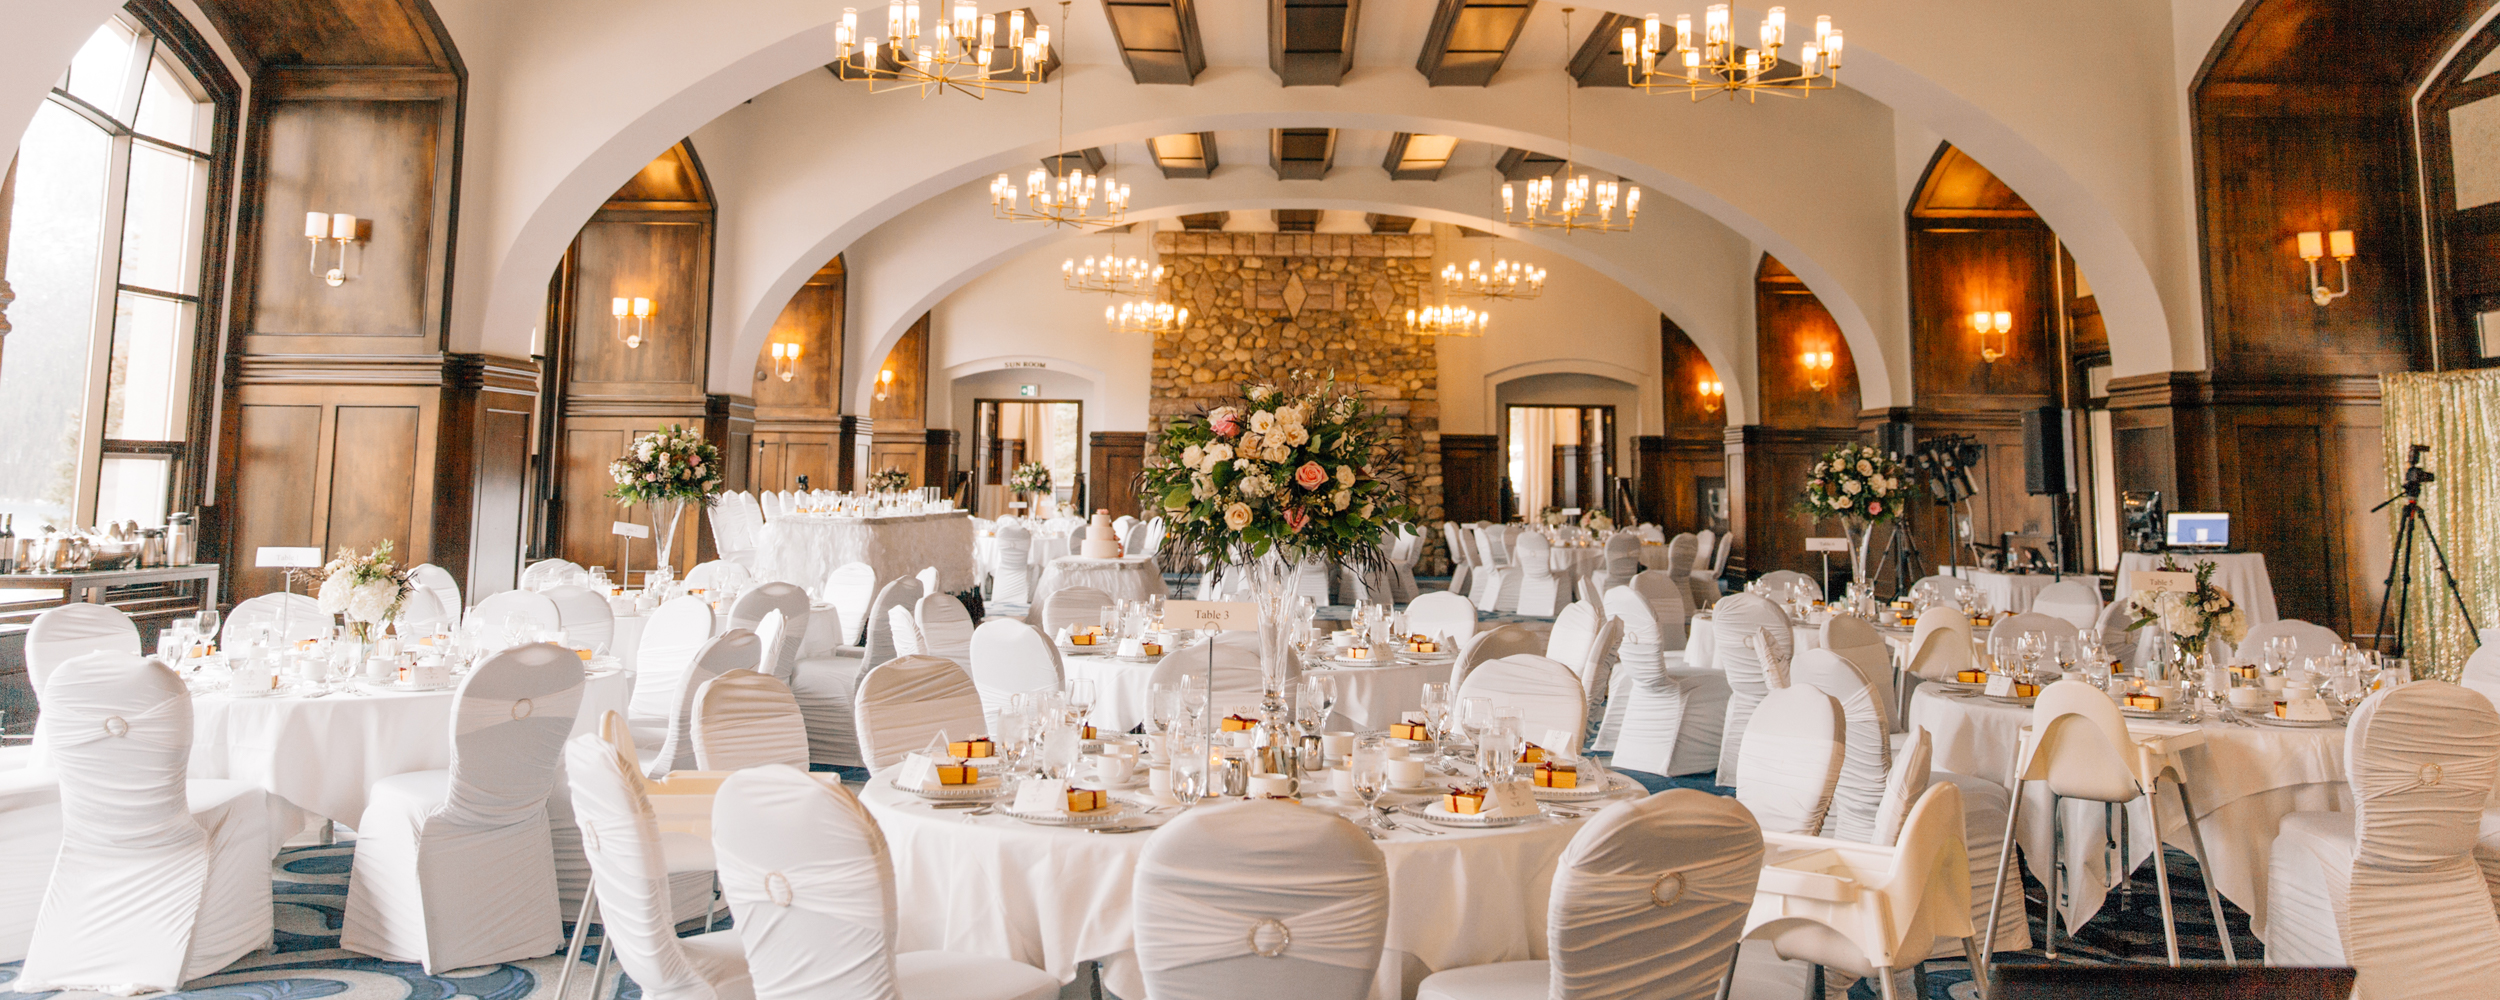 Celebrate special events at the Fairmont Chateau Lake Louise